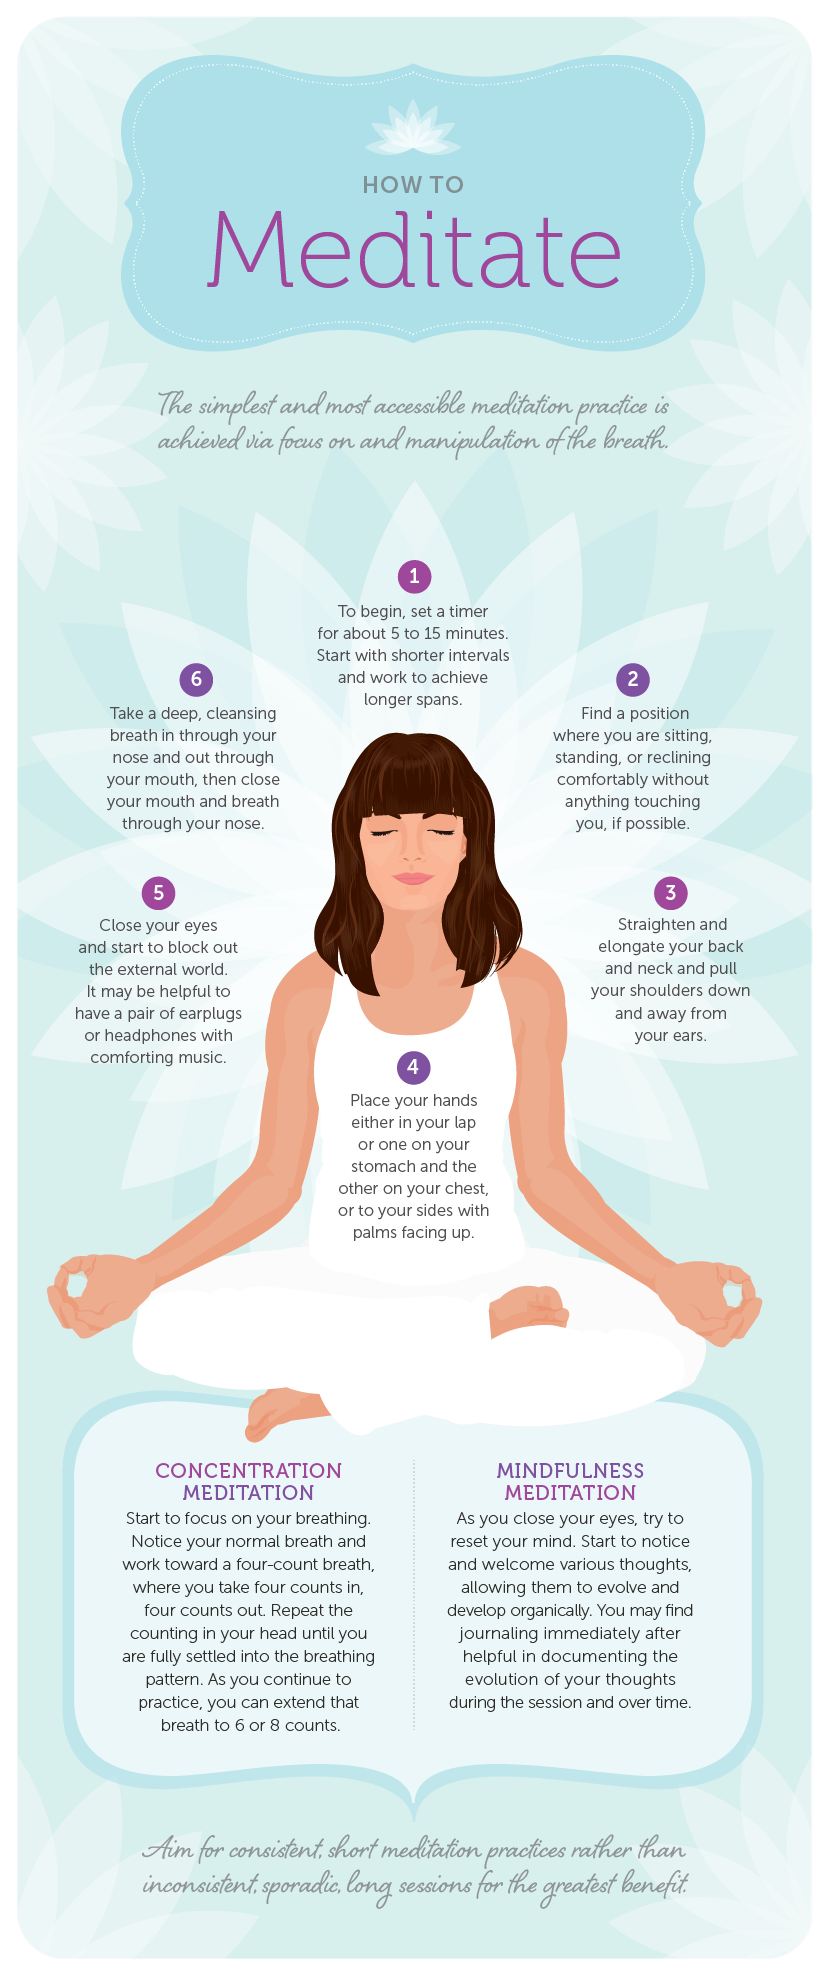 How to Meditate - How Five Minutes of Meditation Can Change Your Life